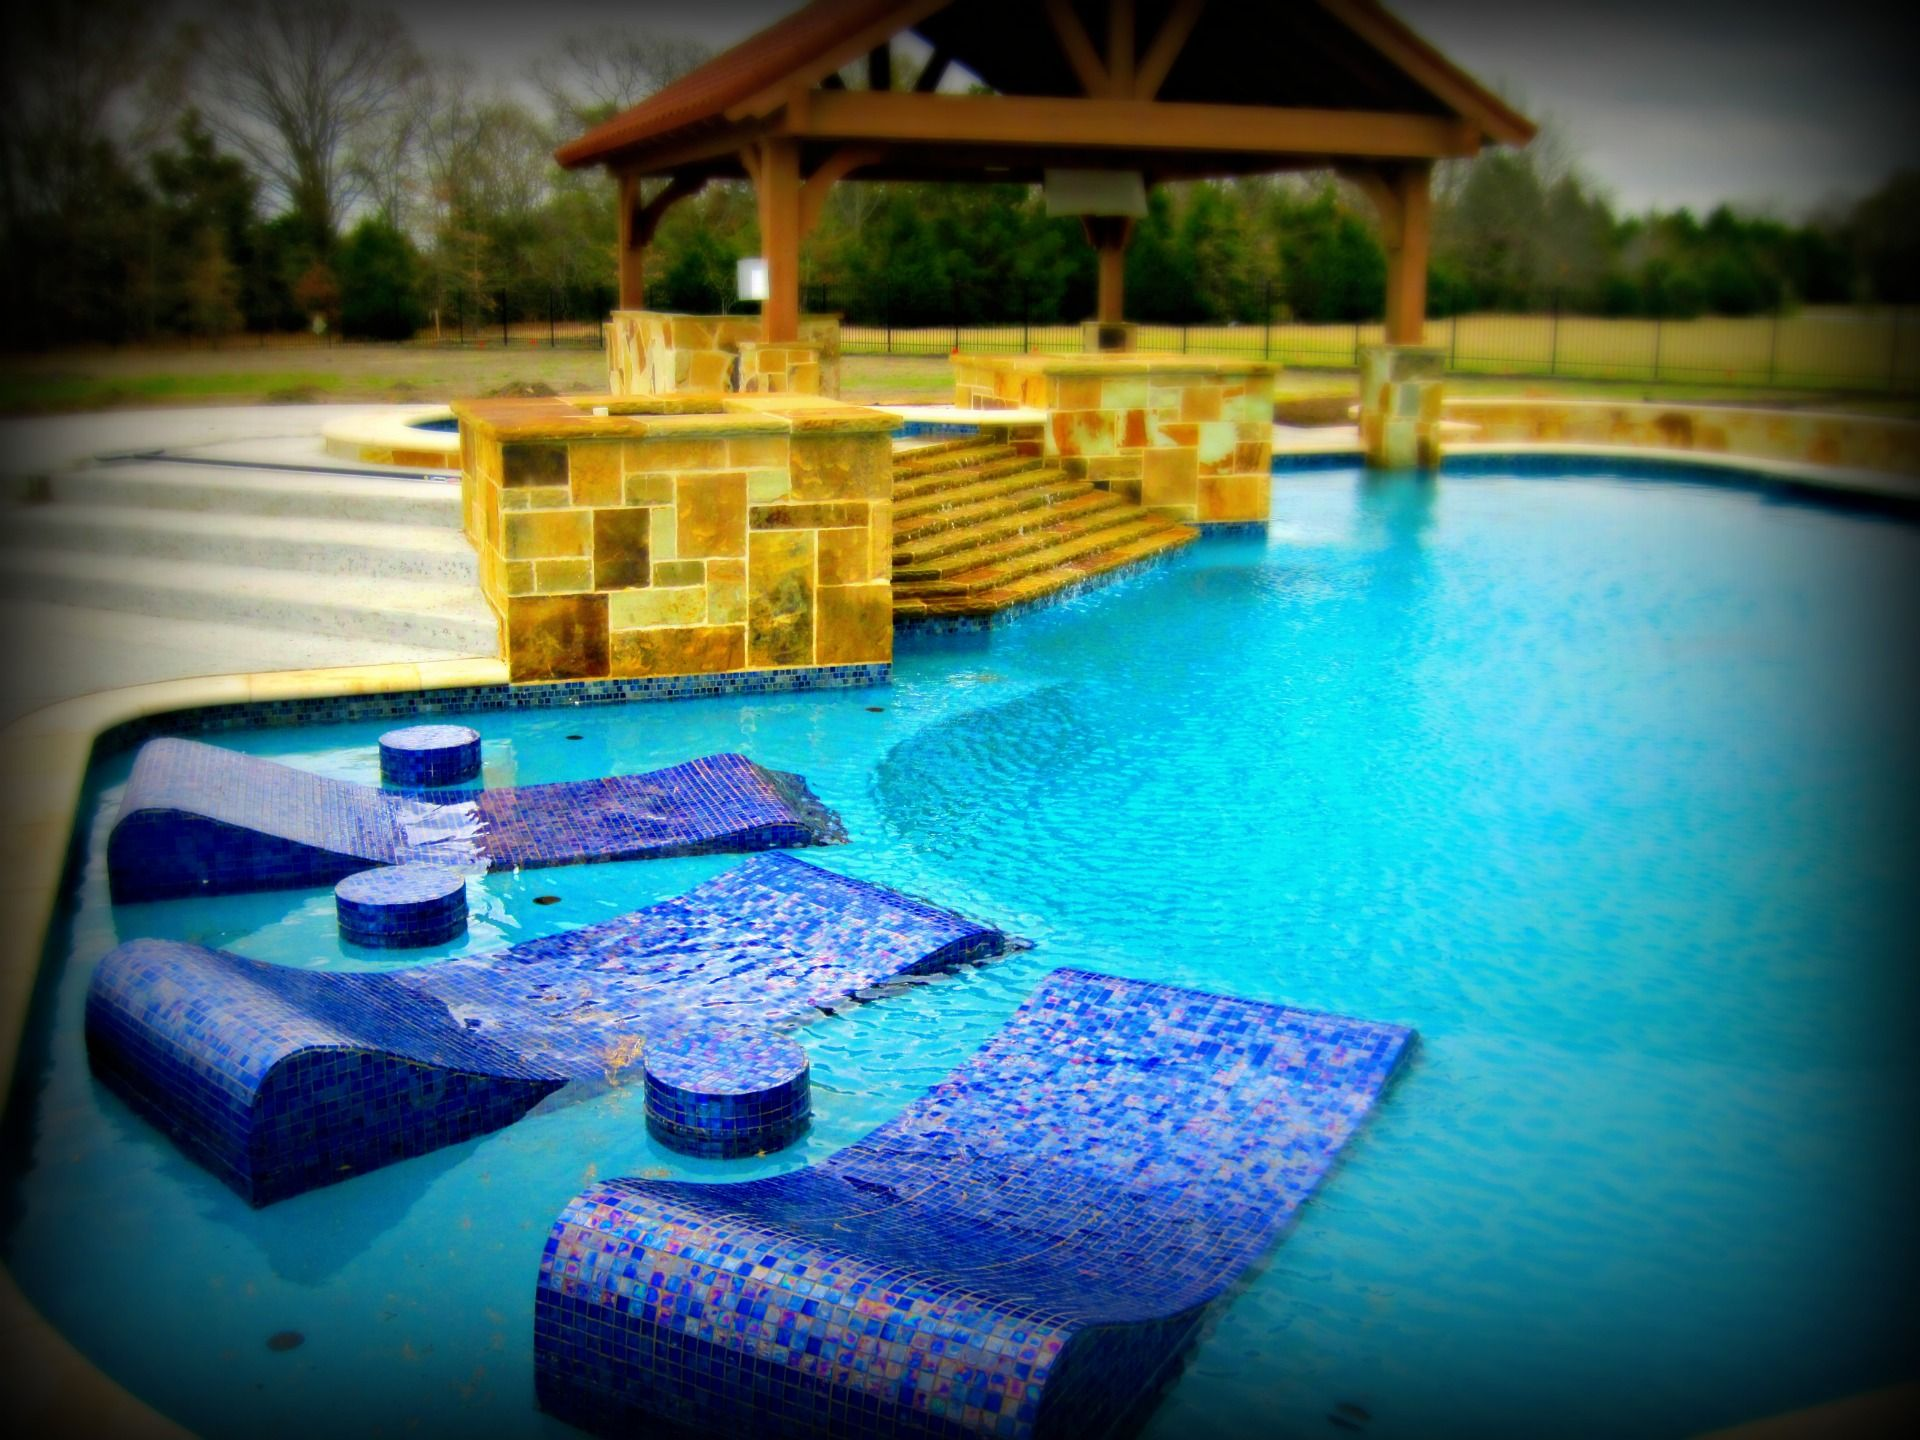 freeform swimming pool examples by dallas fort worth swimming pool builder puryear custom pools